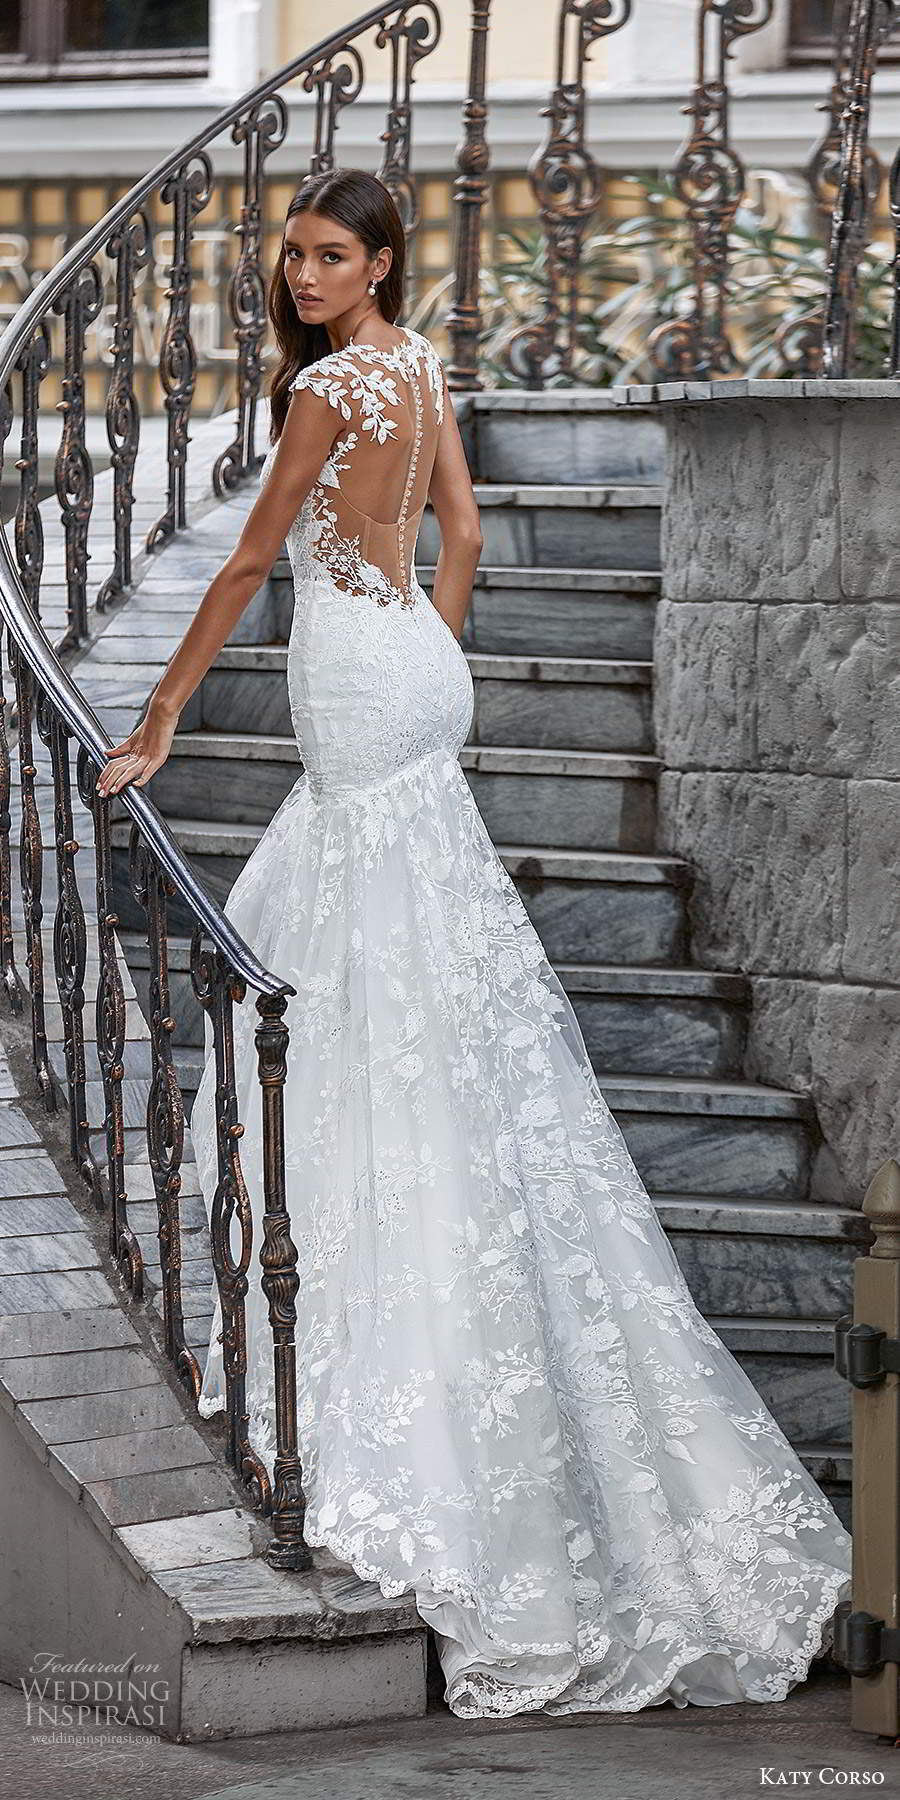 katy corso 2021 bridal cap sleeves plunging sweetheart neckline fully embellished lace fit flare a line wedding dress chapel train illusion back (17) bv